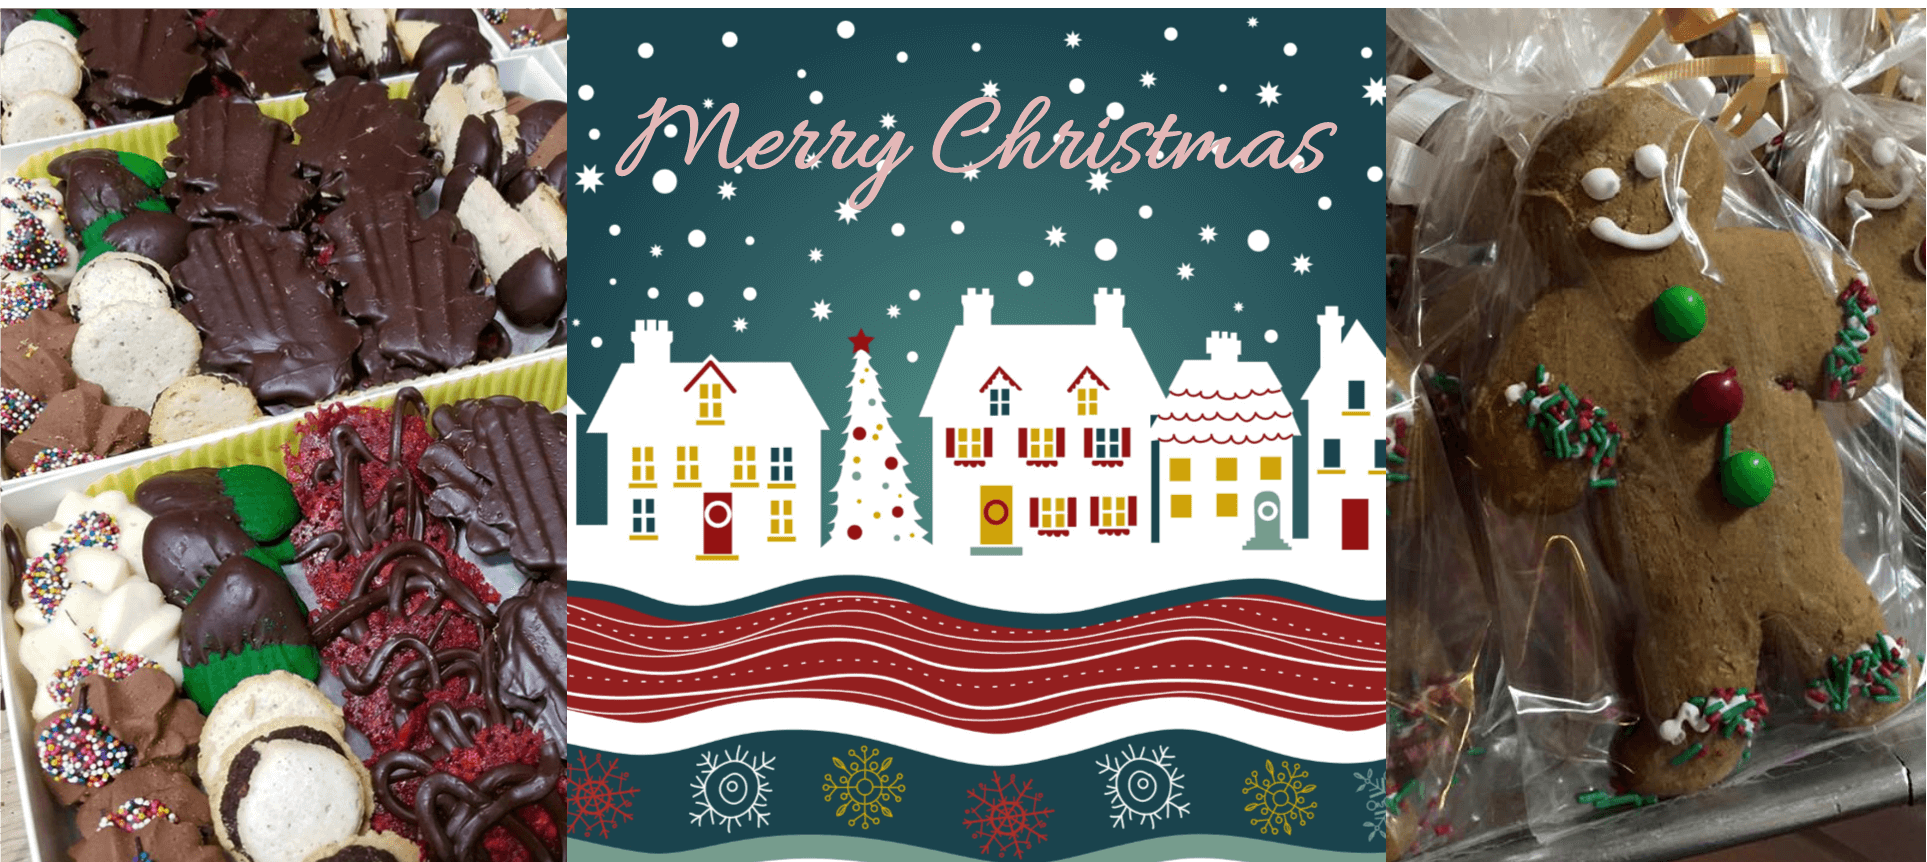 Banner_Images - Christmas.png